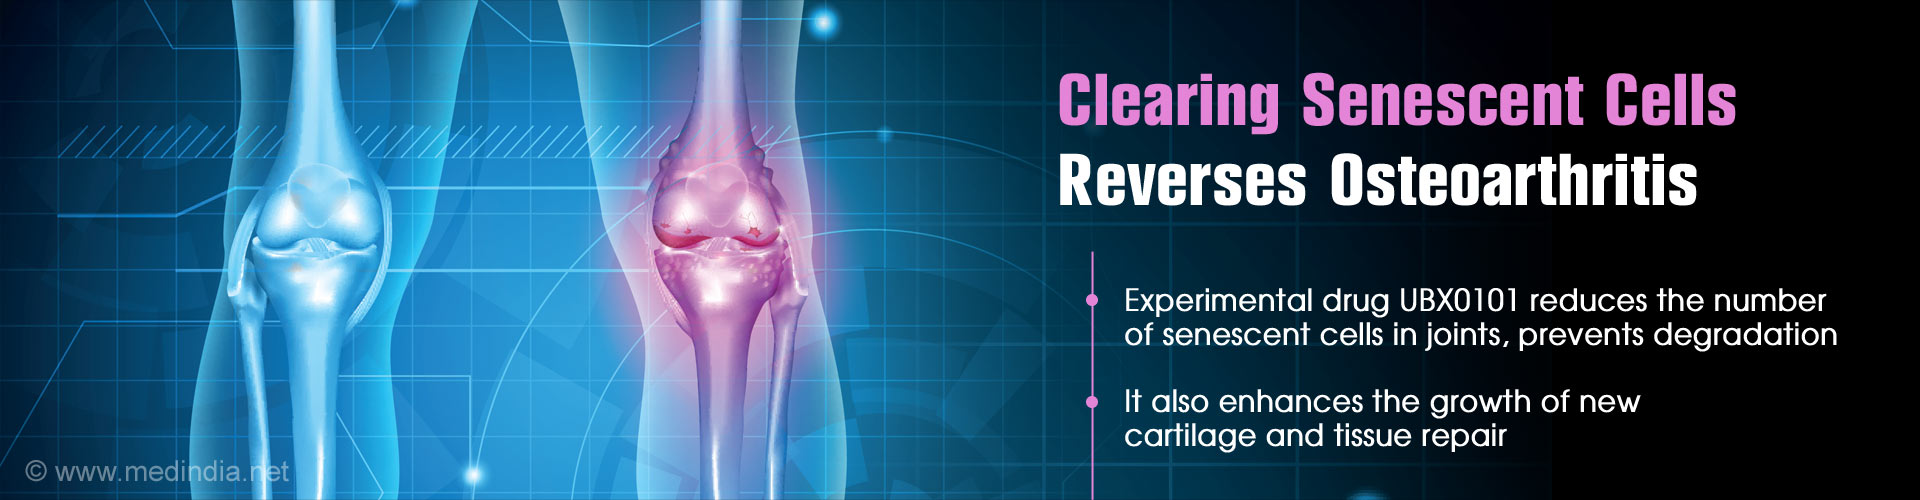 Removing ''Old'' Cells Could Reverse Osteoarthritis